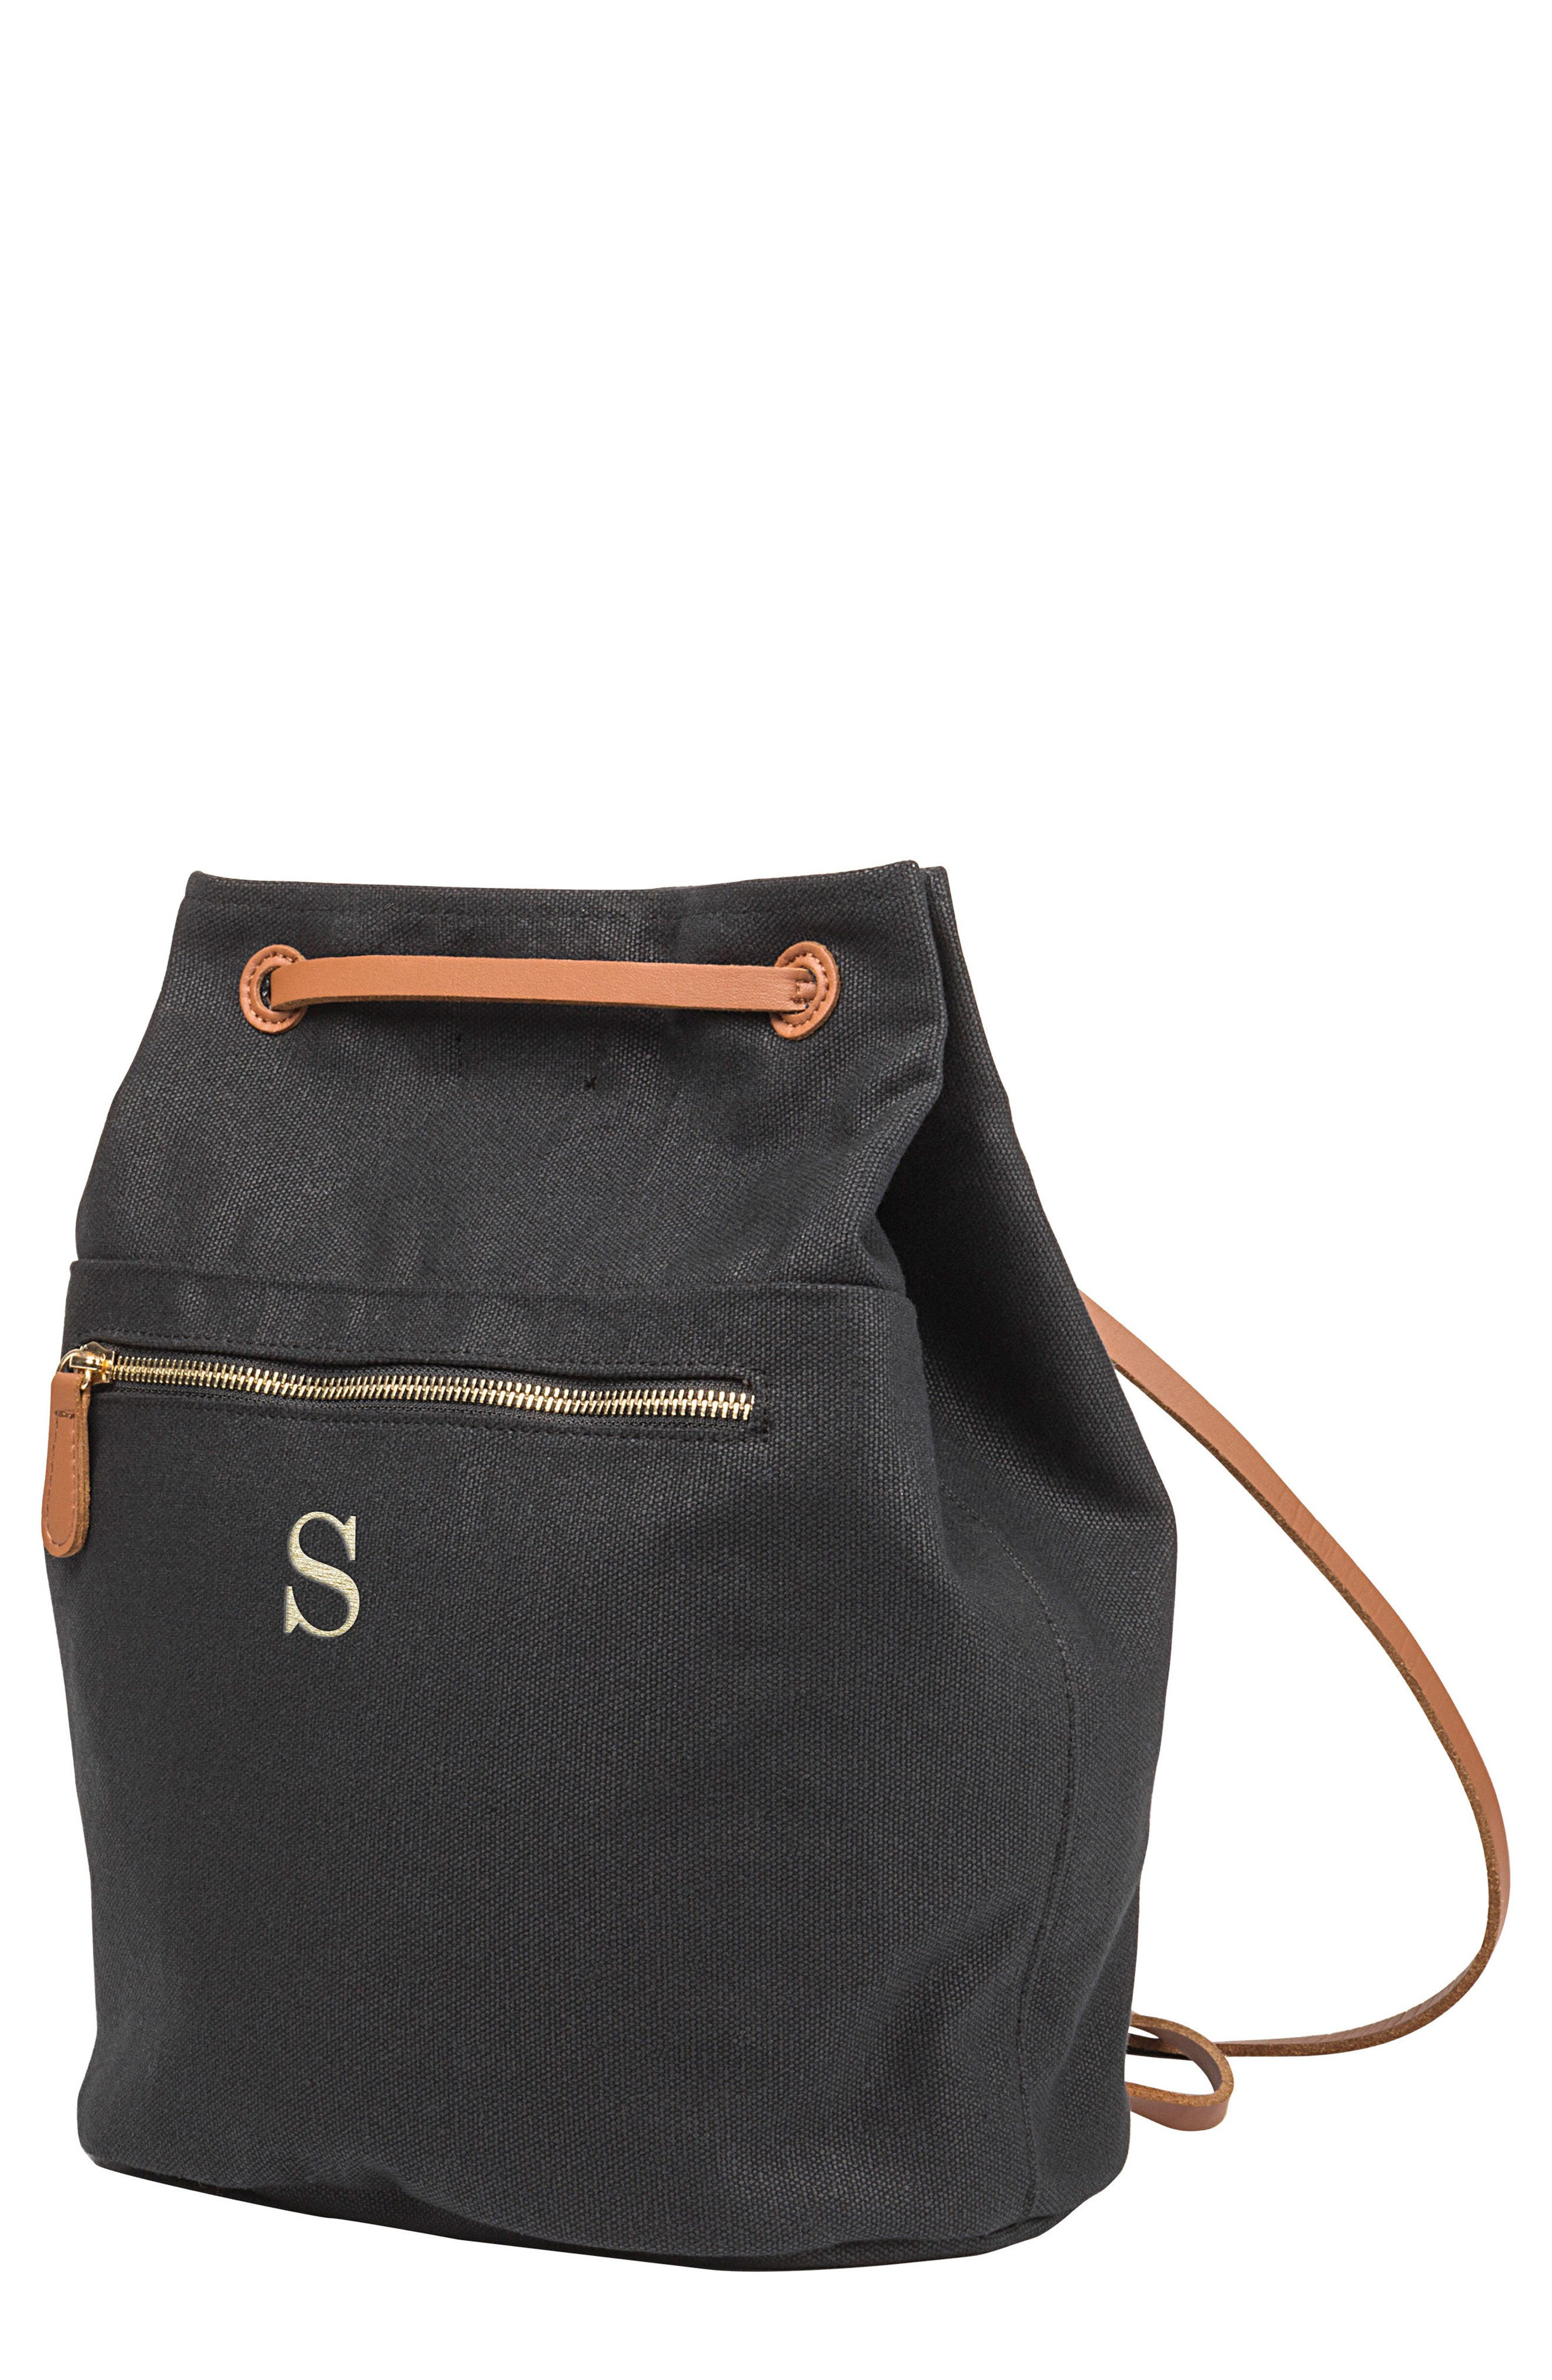 Cathy's Concepts Monogram Convertible Backpack